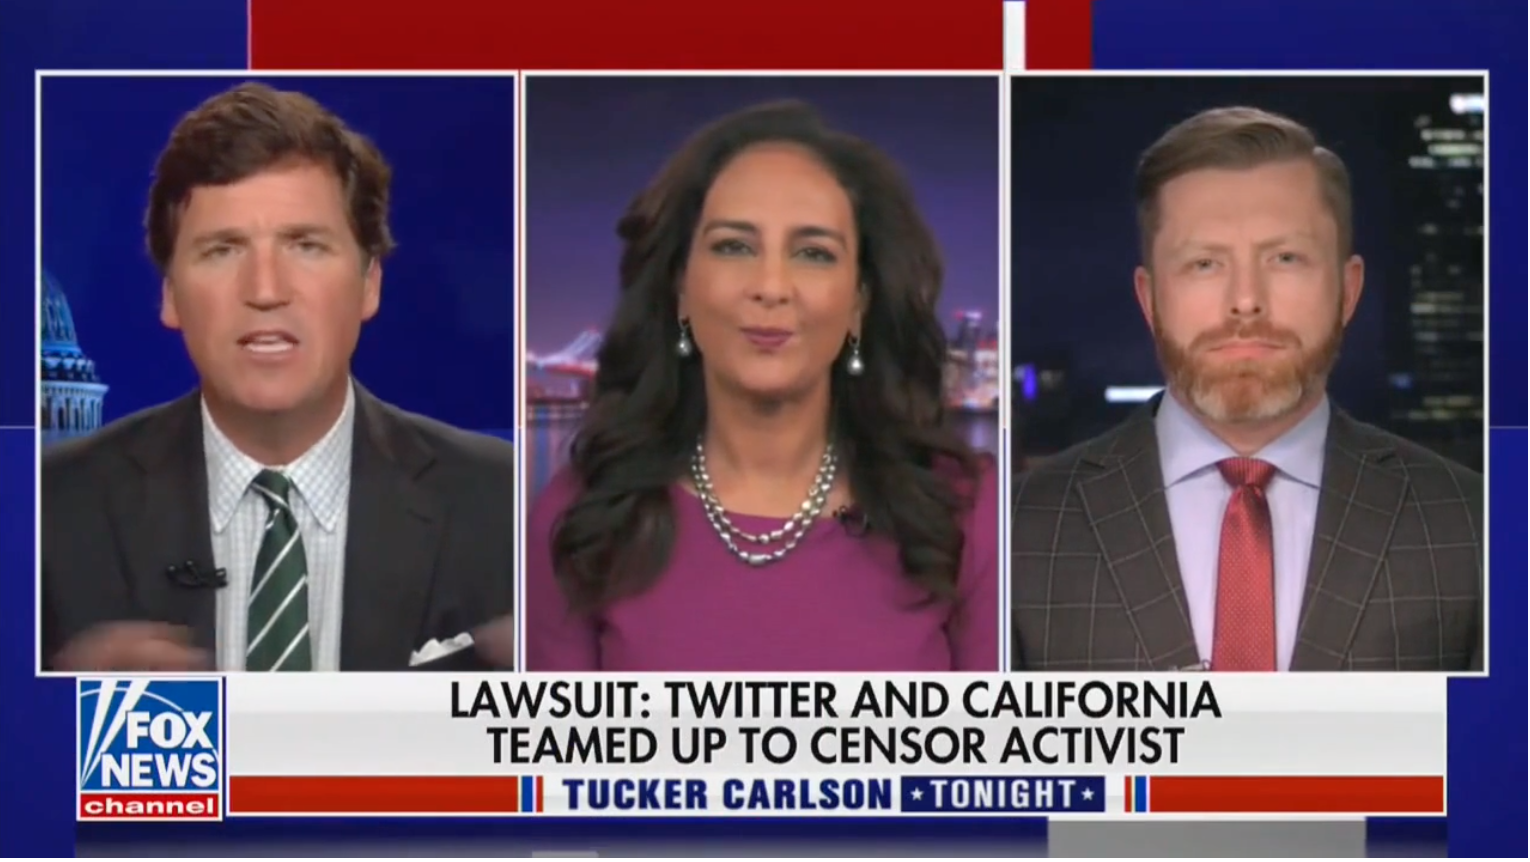 Dhillon and O'Handley Announce Lawsuit Against Twitter, Sen. Padilla, and Others